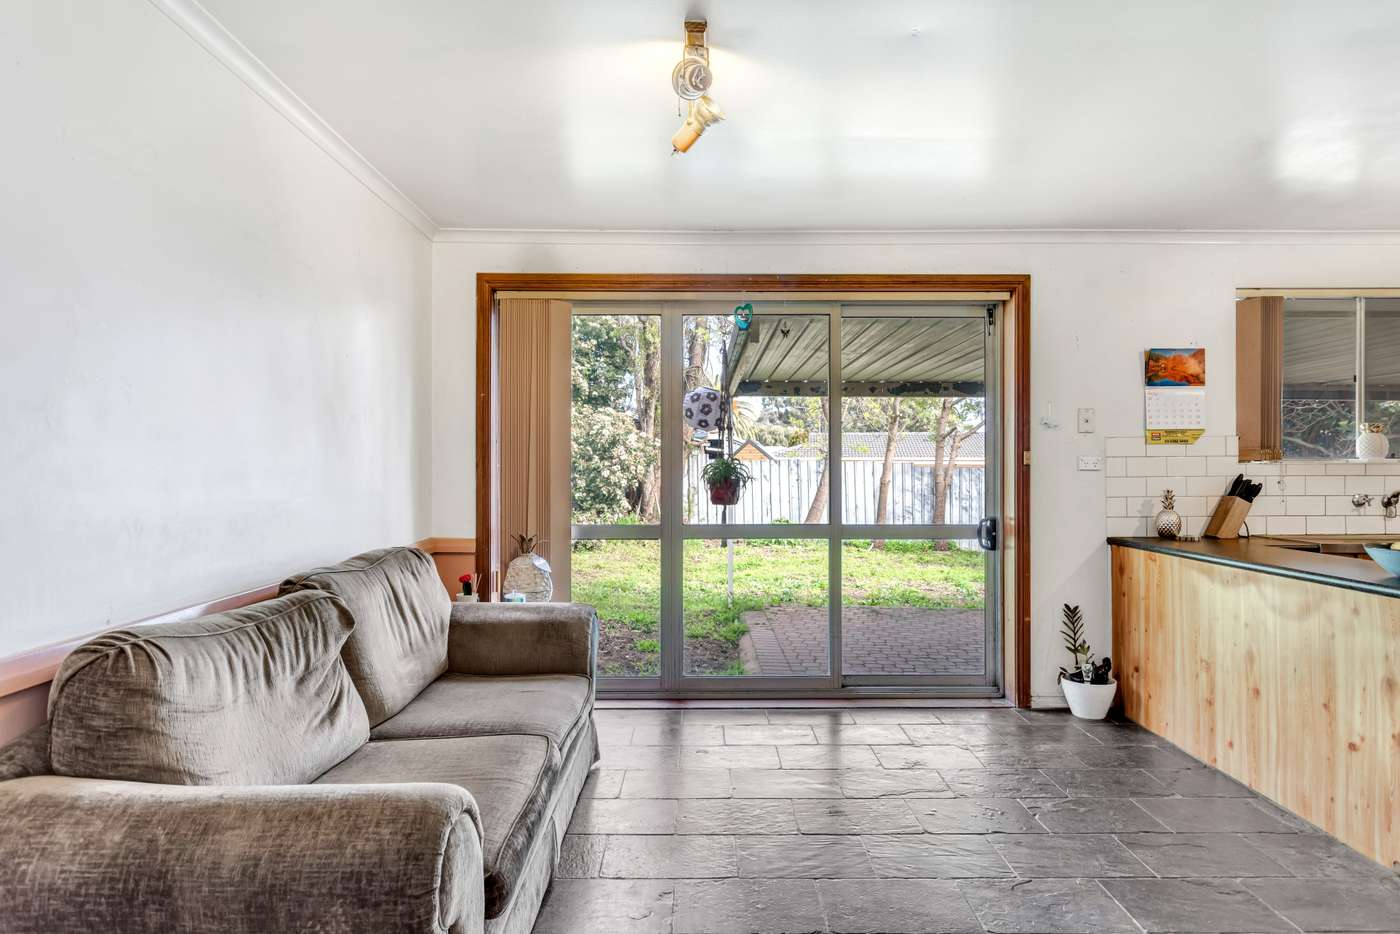 Fifth view of Homely house listing, 13 Fyfe Court, Aberfoyle Park SA 5159